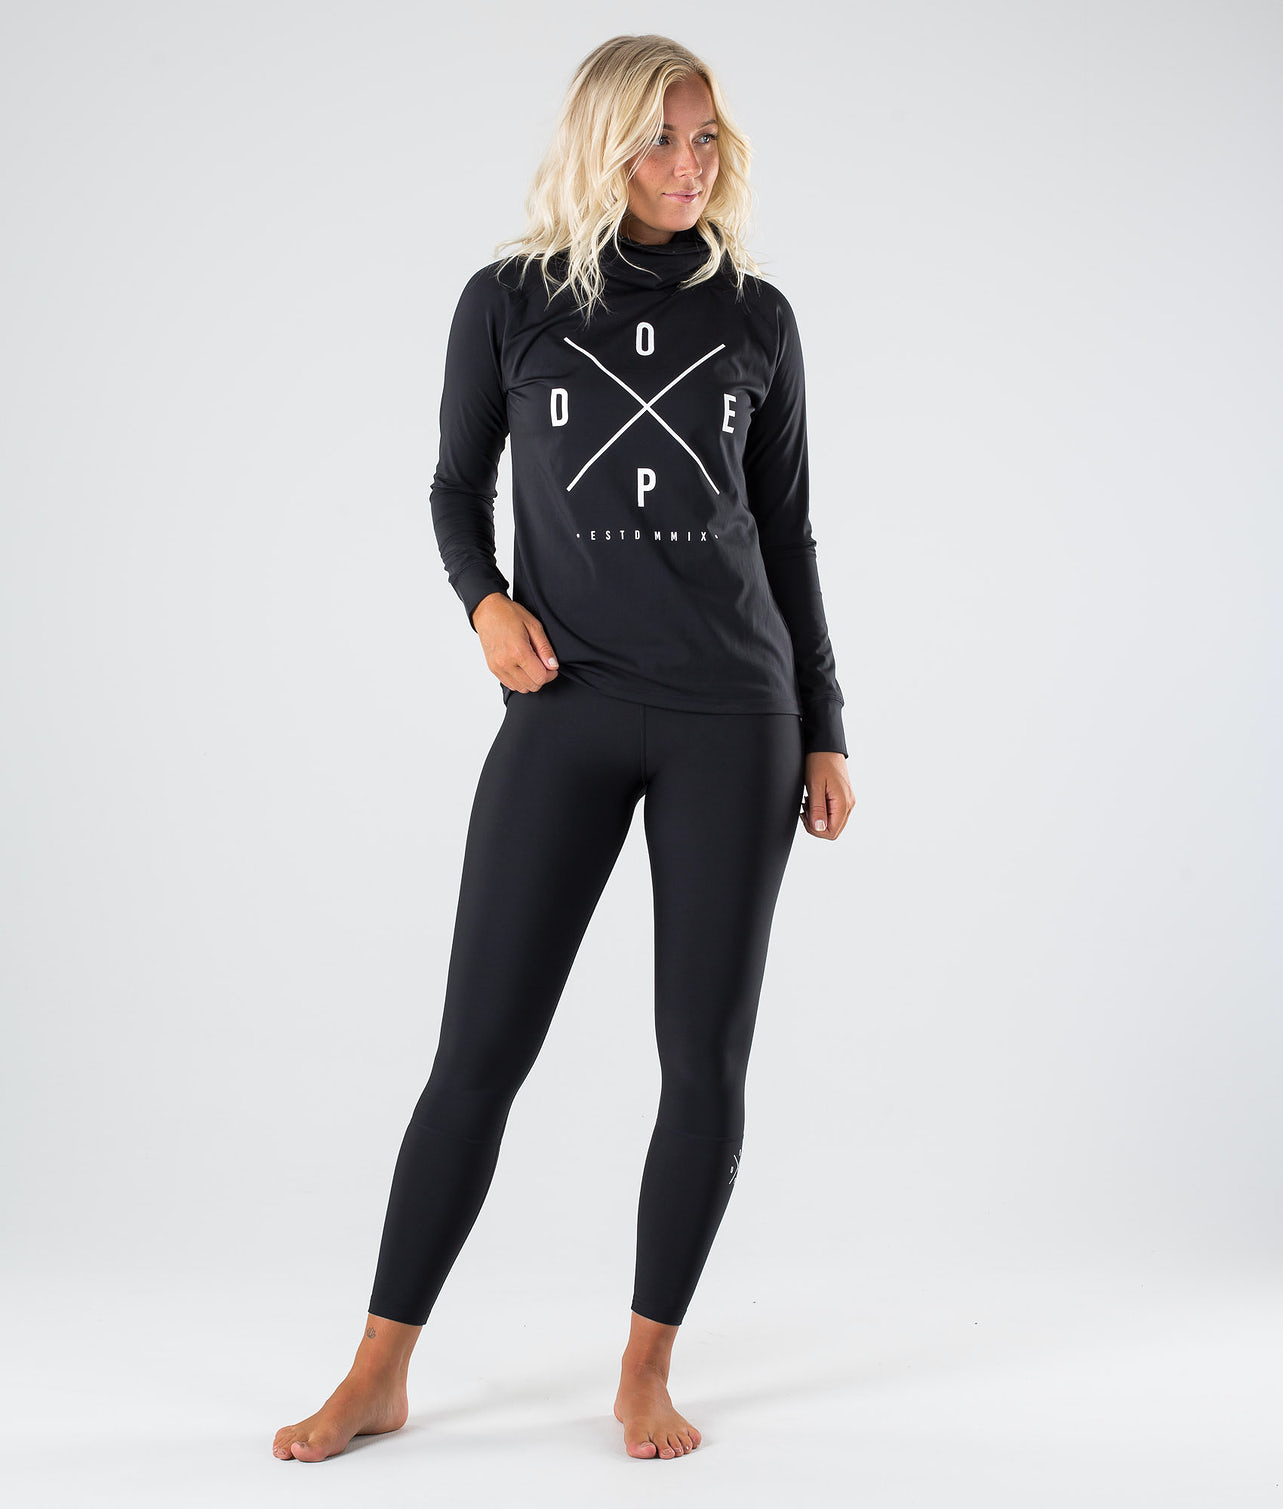 Buy Snuggle 2X-UP W Base Layer Top from Dope at Ridestore.com - Always free shipping, free returns and 30 days money back guarantee